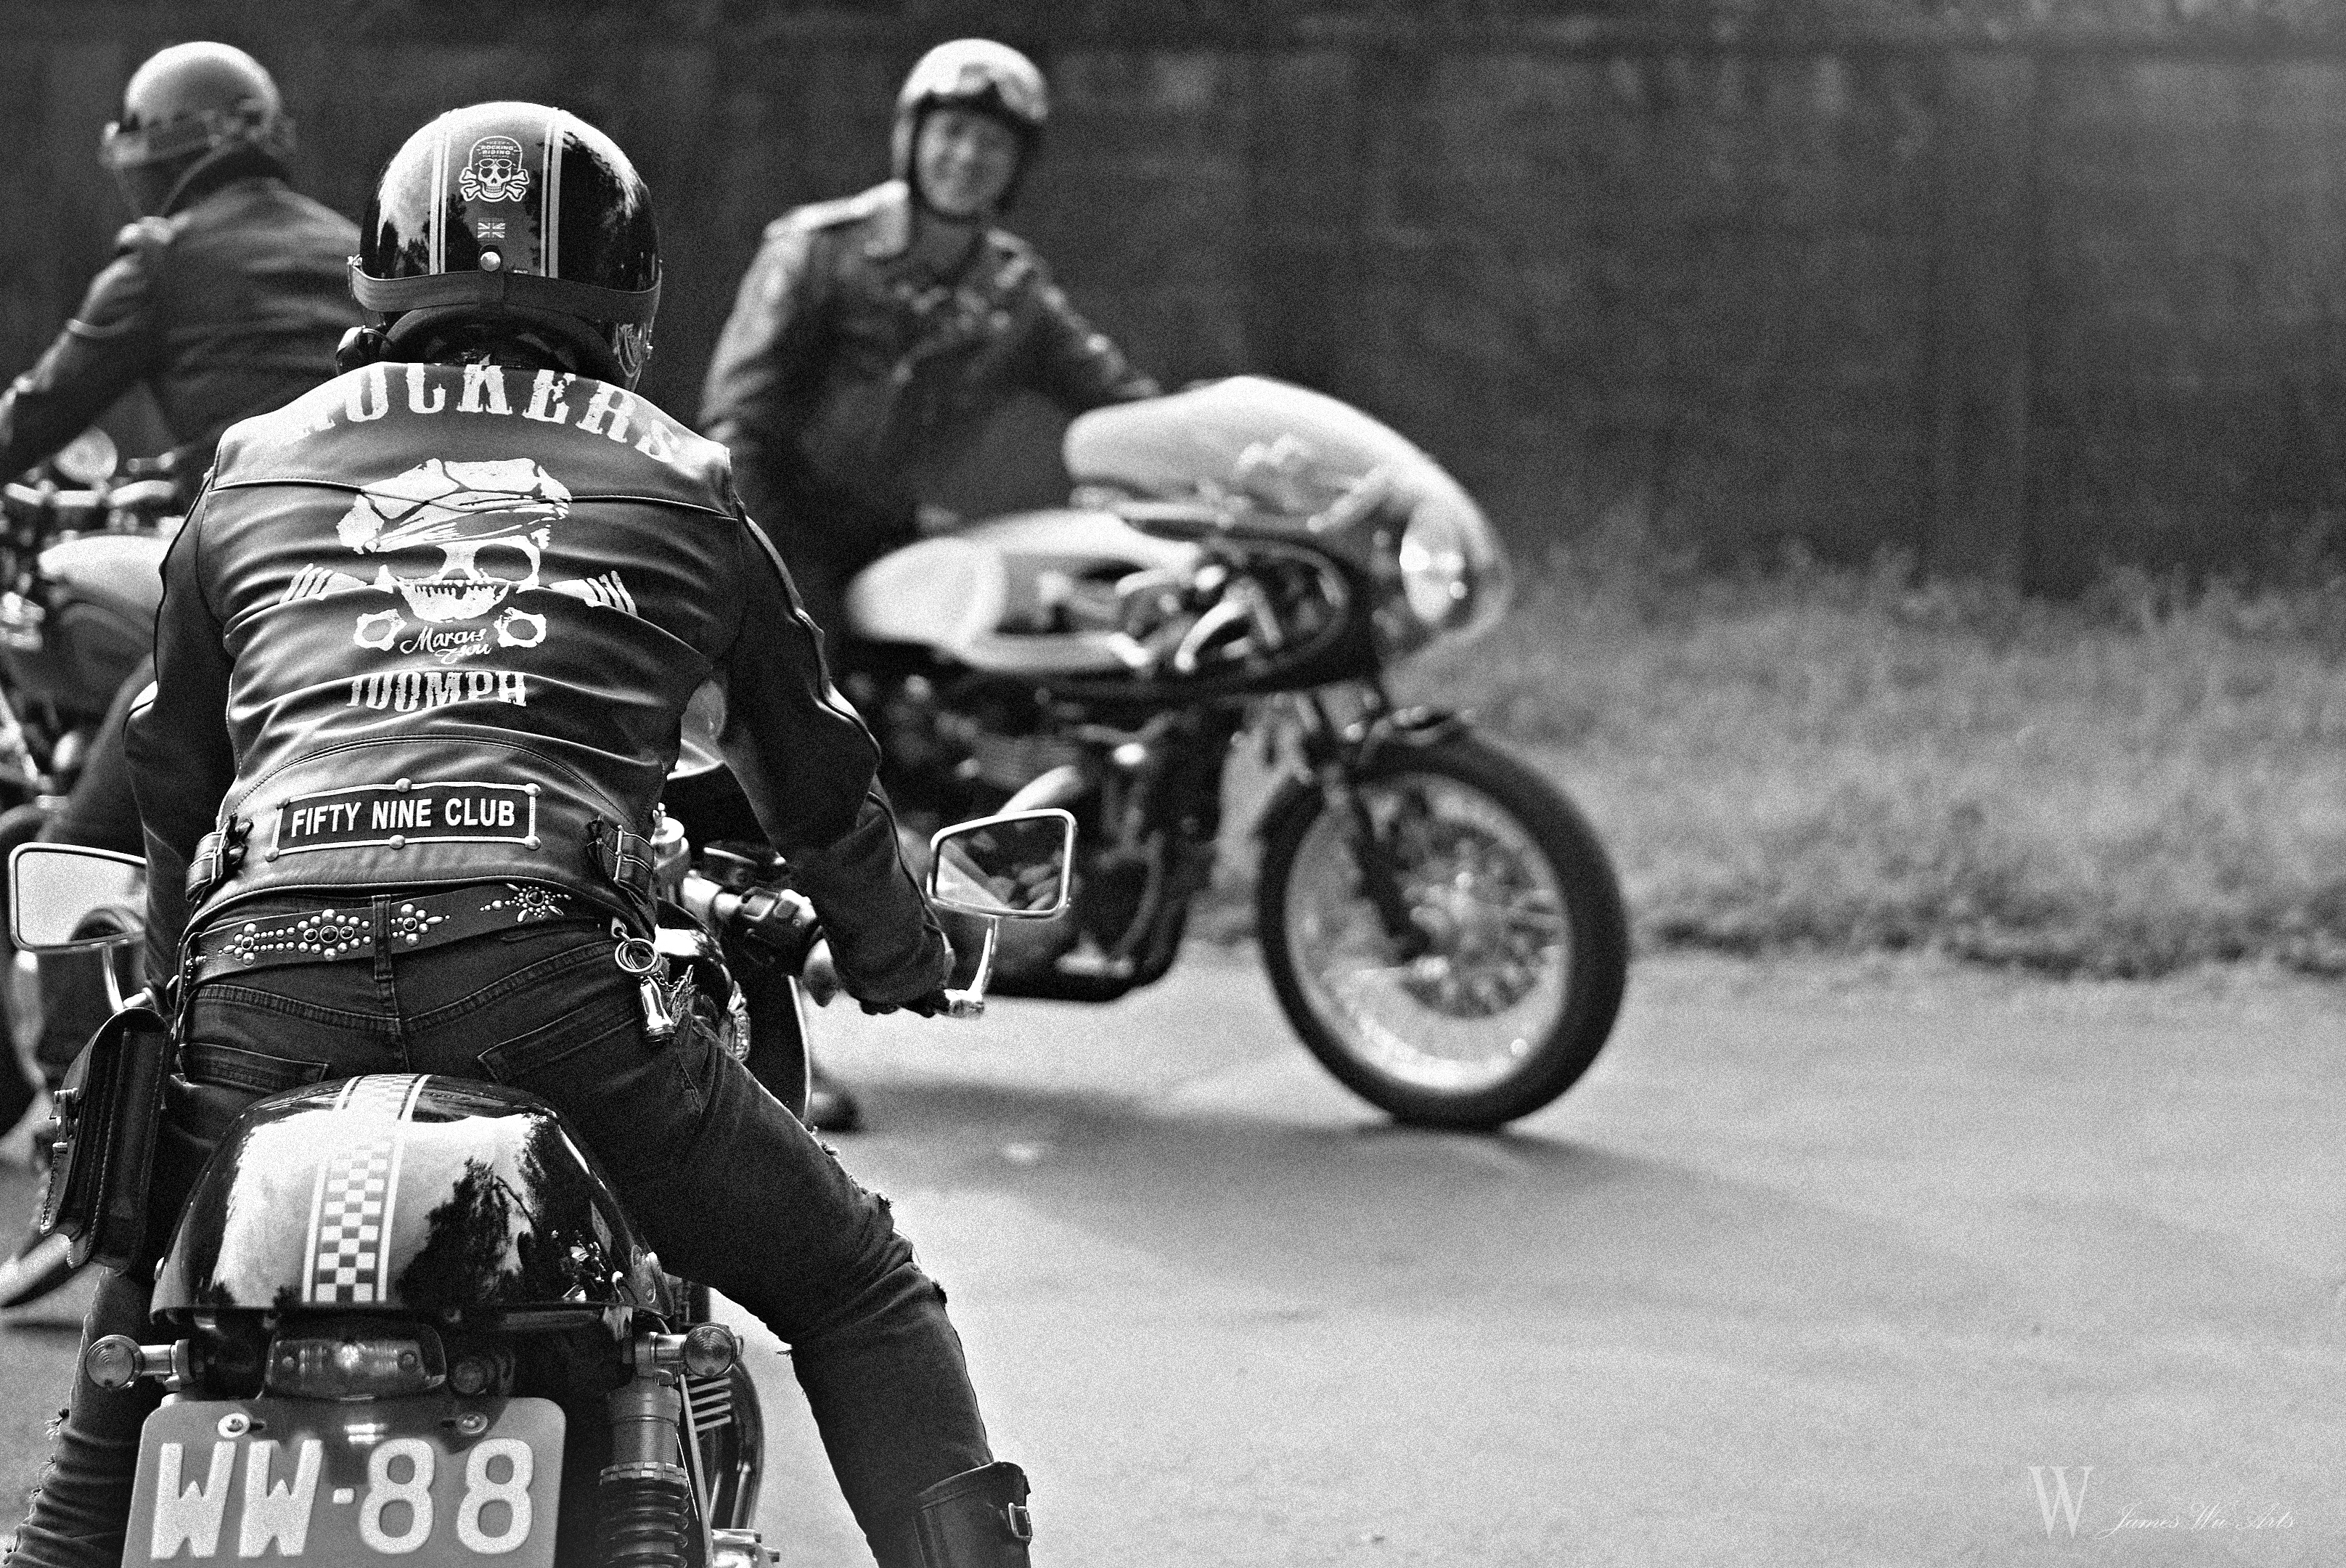 TONUP ROCKERS CAFE RACER (27)